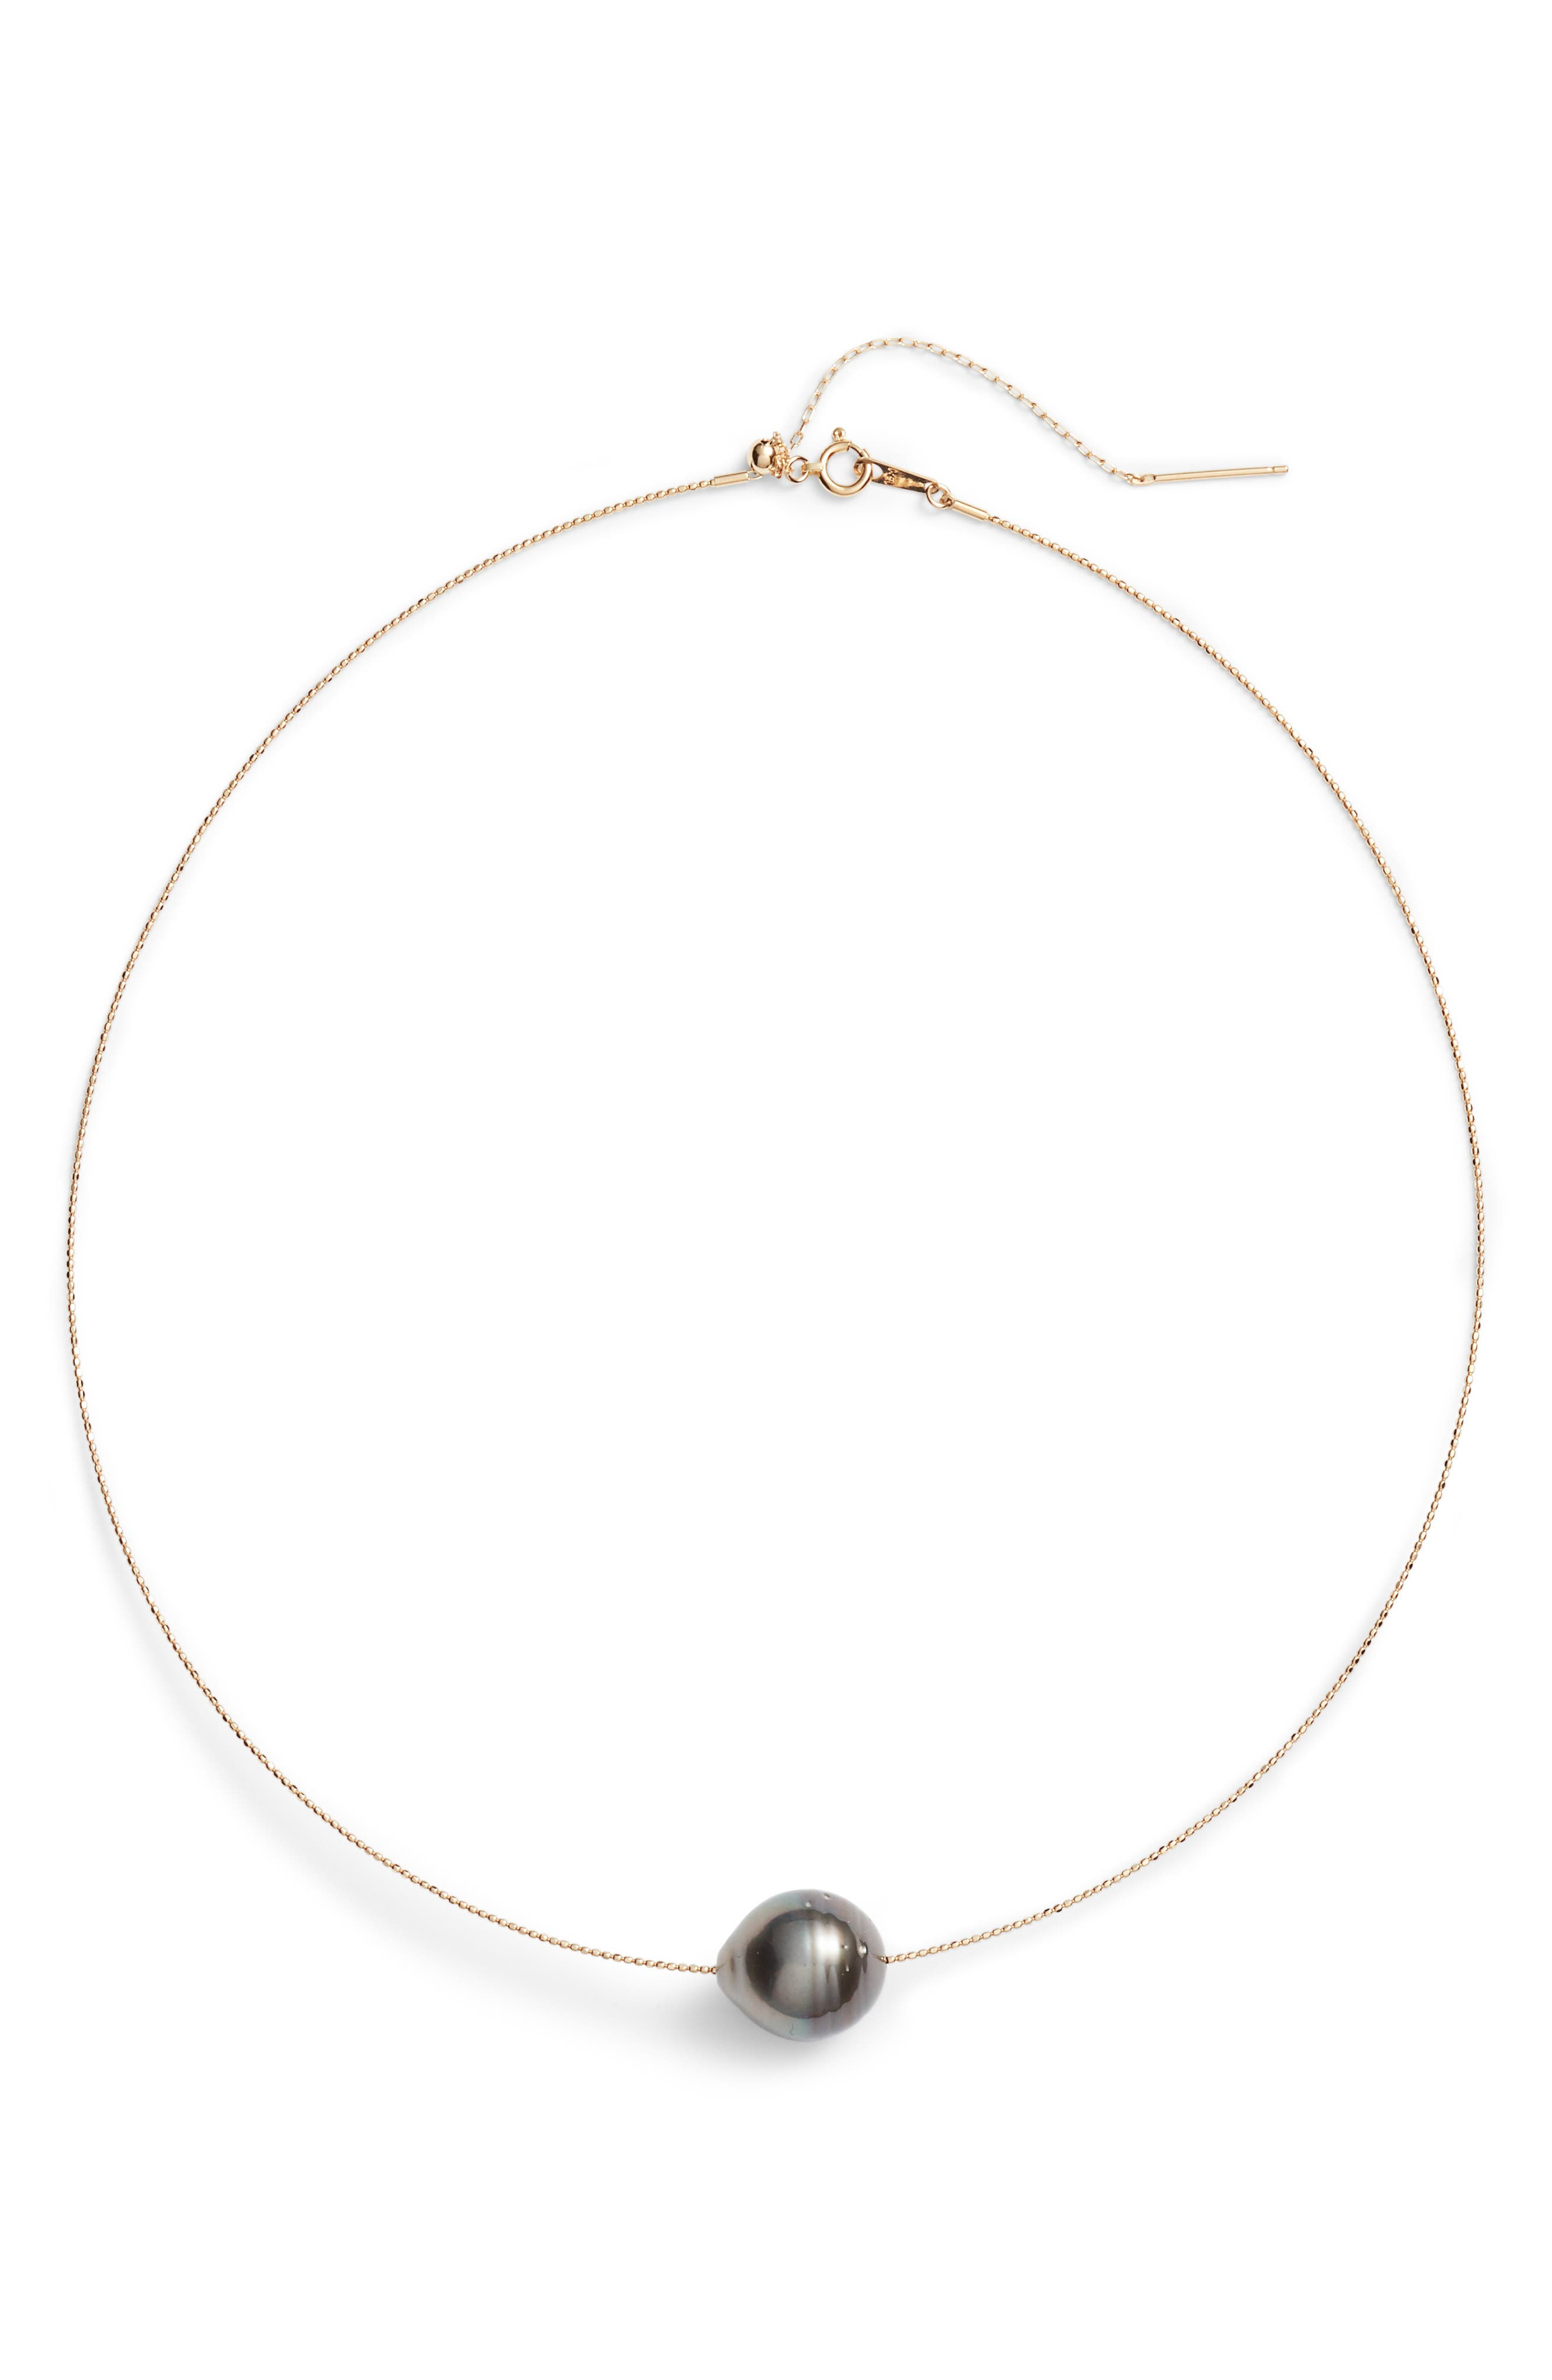 South Sea Collar Necklace with Genuine Pearl,                             Main thumbnail 1, color,                             Yellow Gold/ Black Pearl